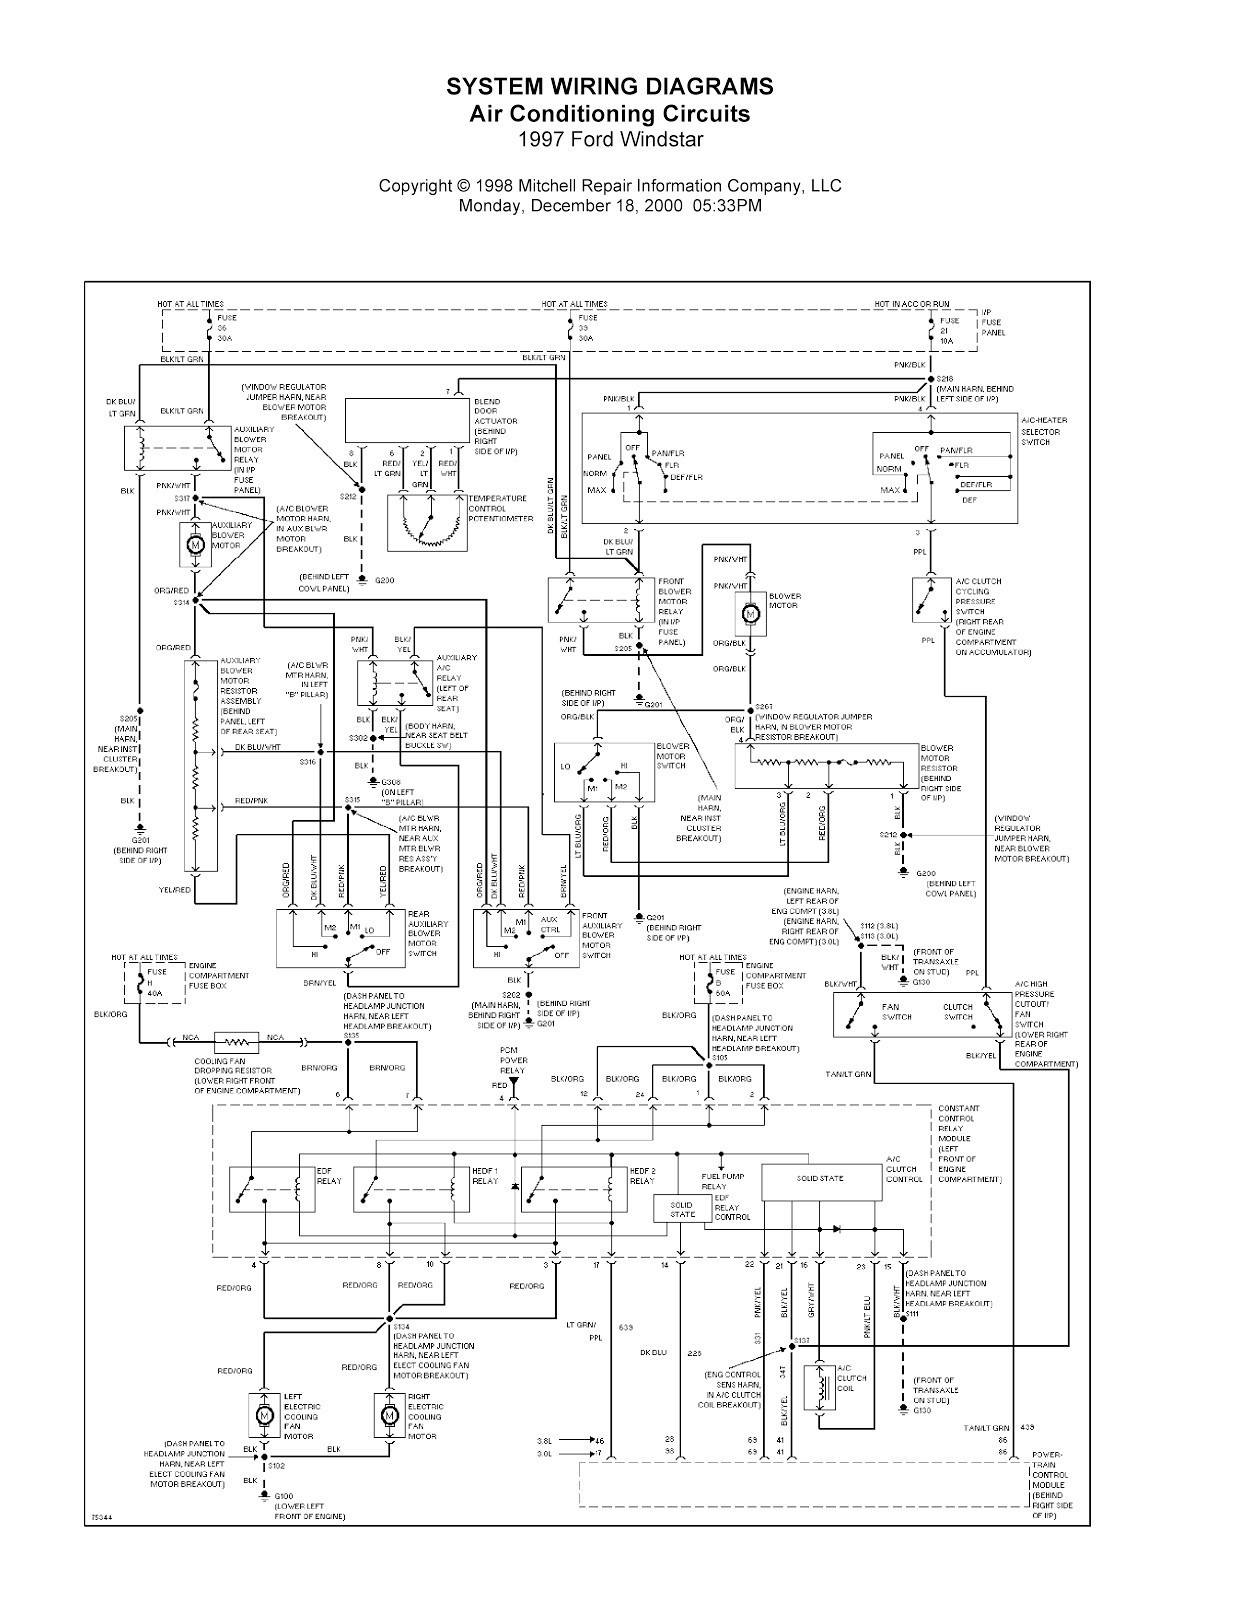 Fuse Diagram For Ford Windstar